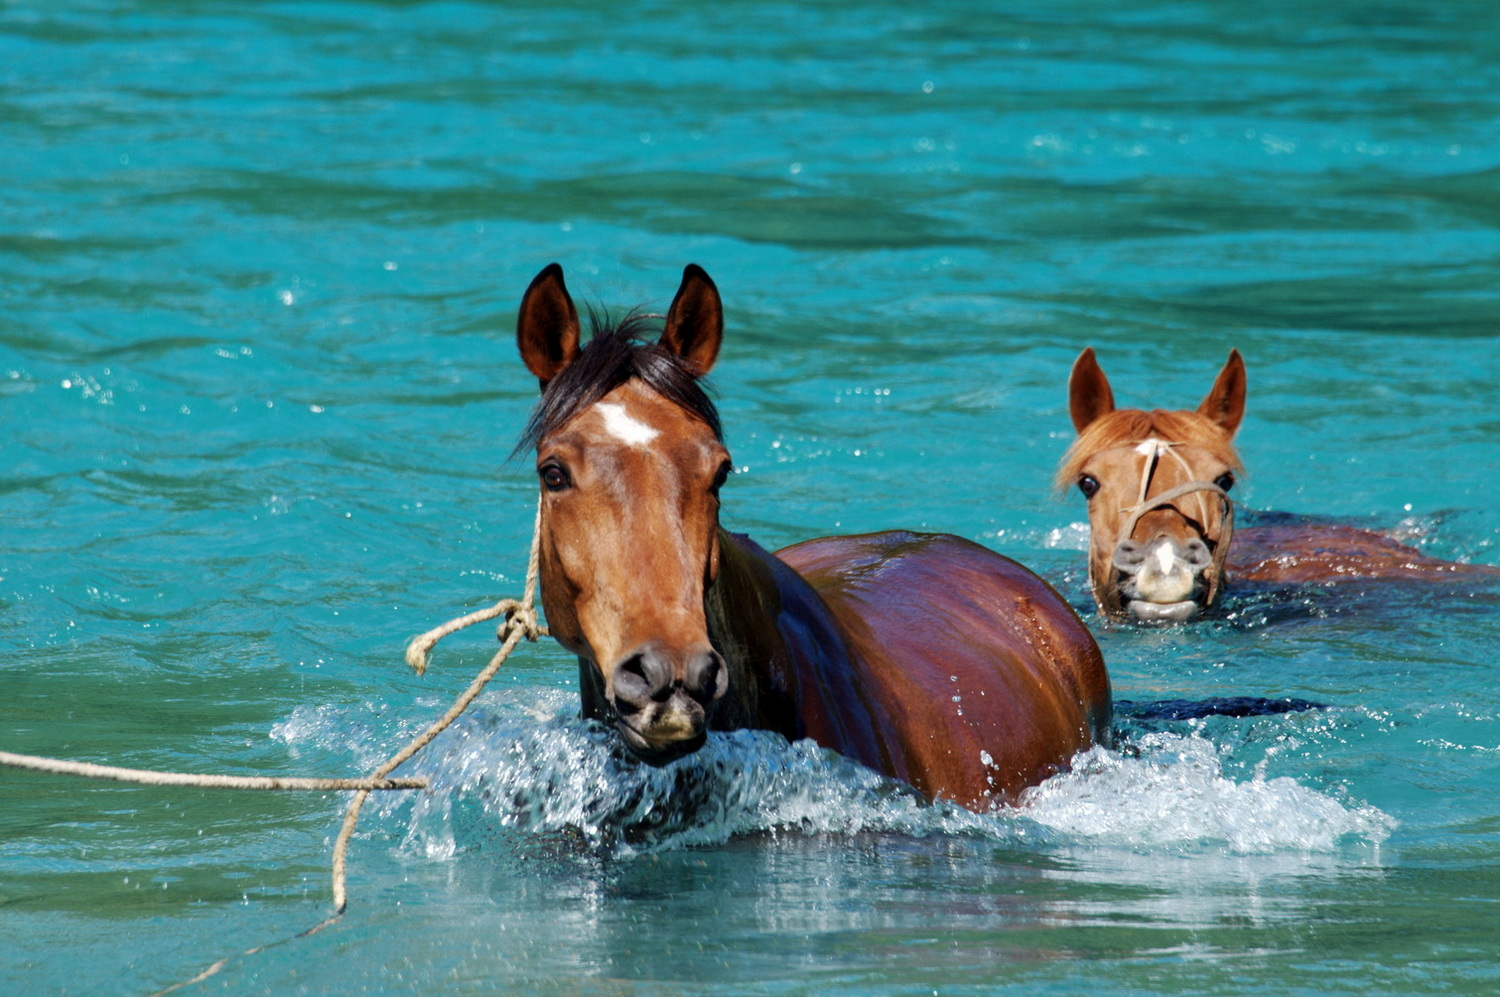 Horses-swiming-the-puelo-river-1500